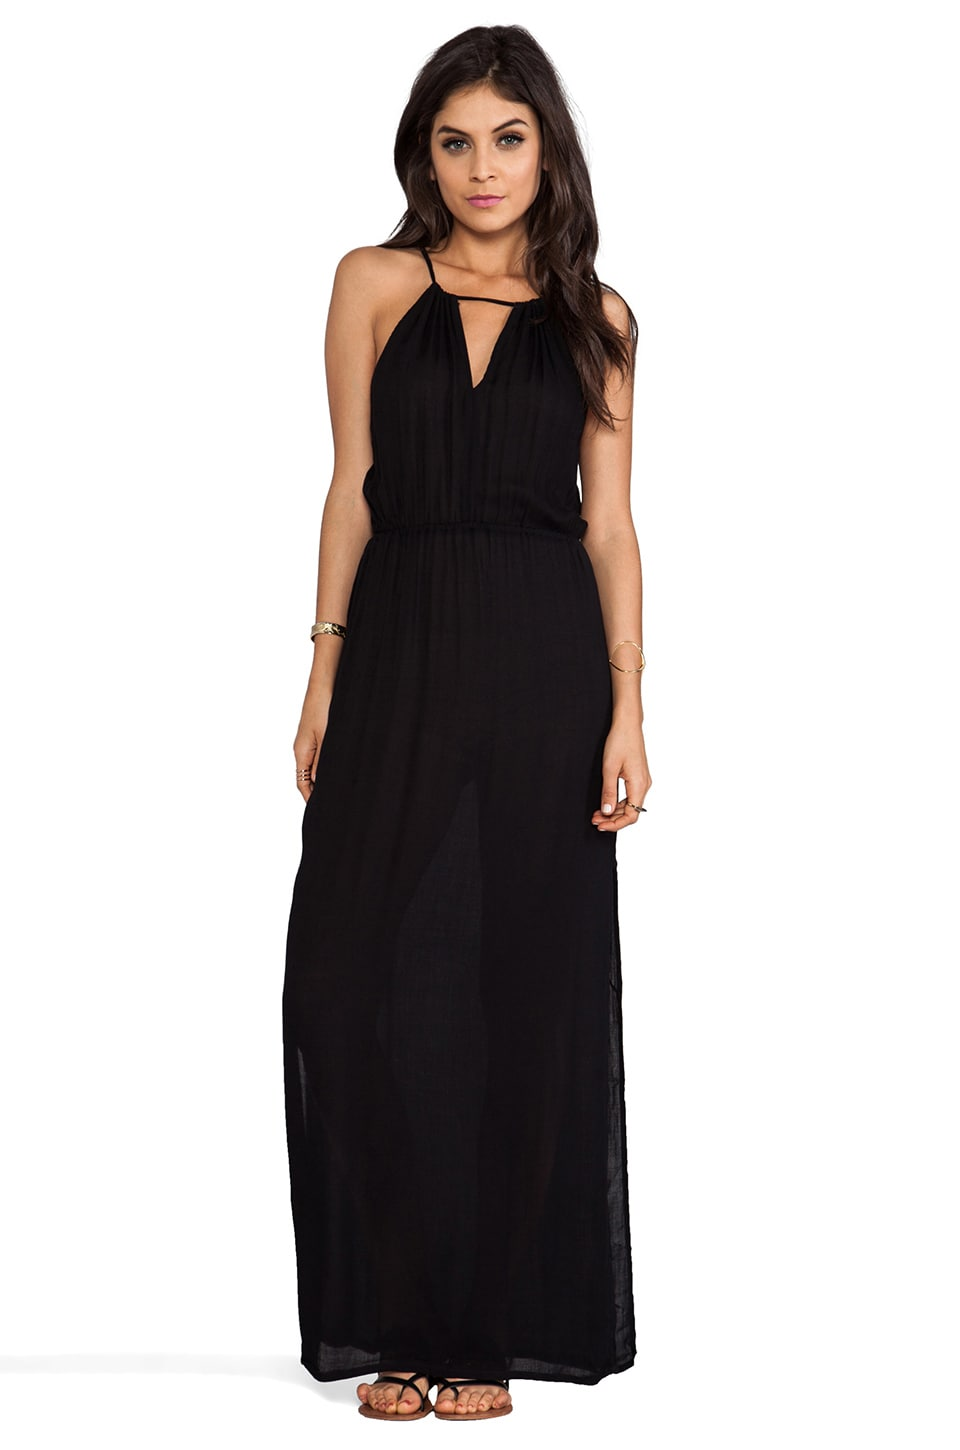 MINKPINK Glamourama Maxi Dress in Black